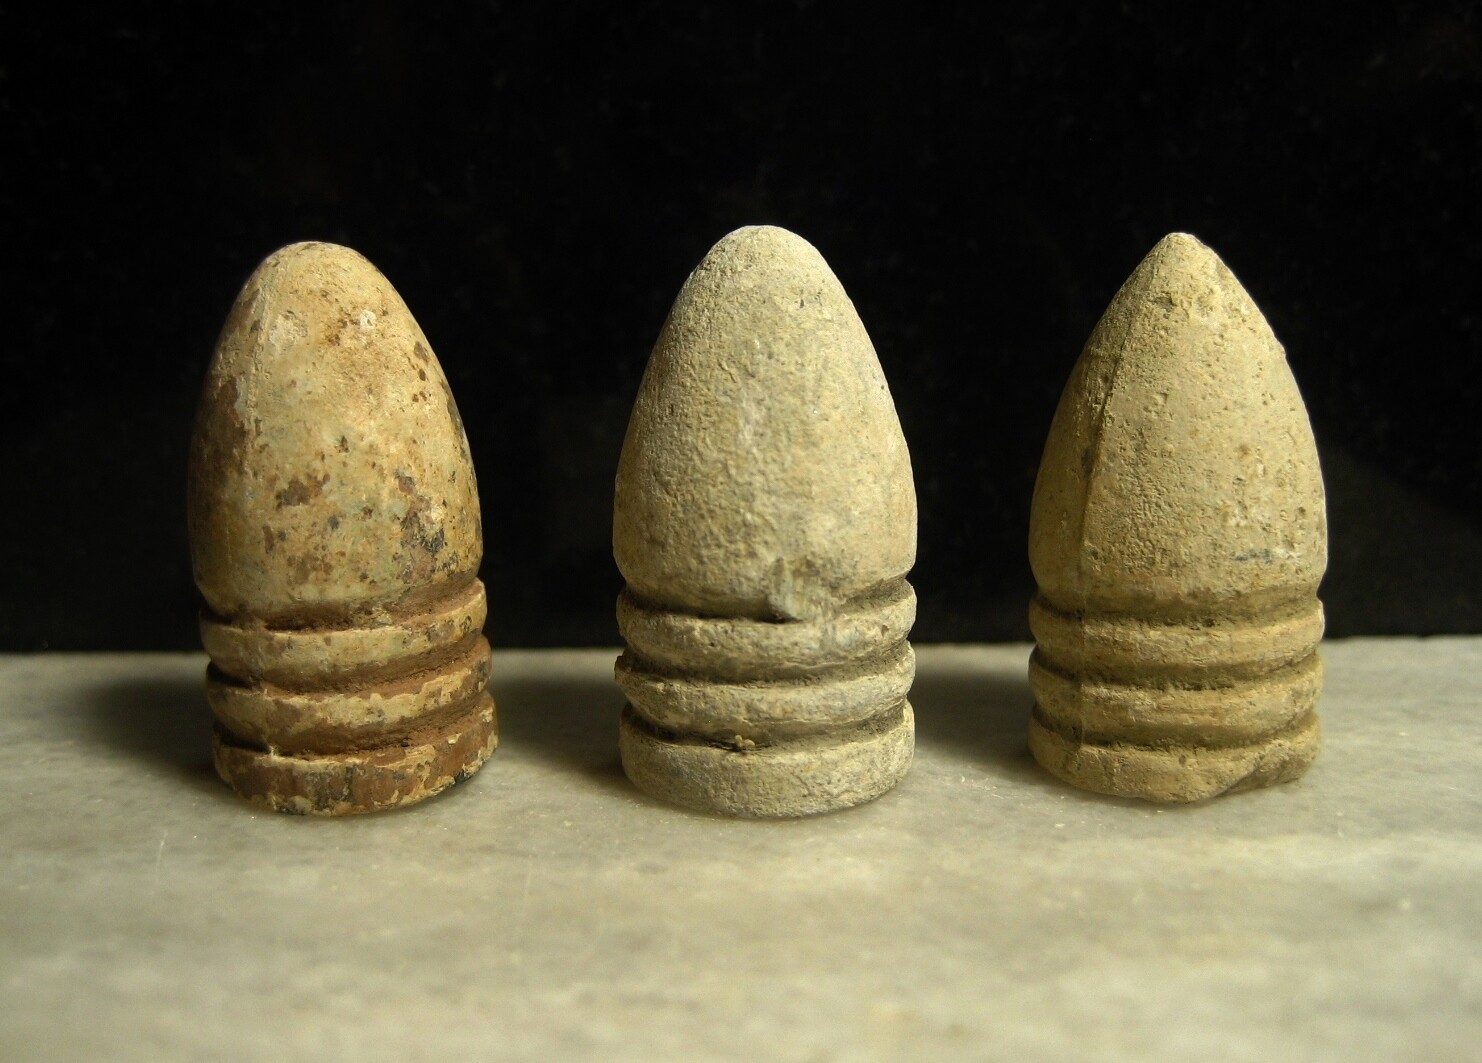 JUST ADDED ON 4/1 - BATTLE OF GETTYSBURG / CULP'S HILL - Two .58 Caliber Bullets and One .54 Caliber Bullet